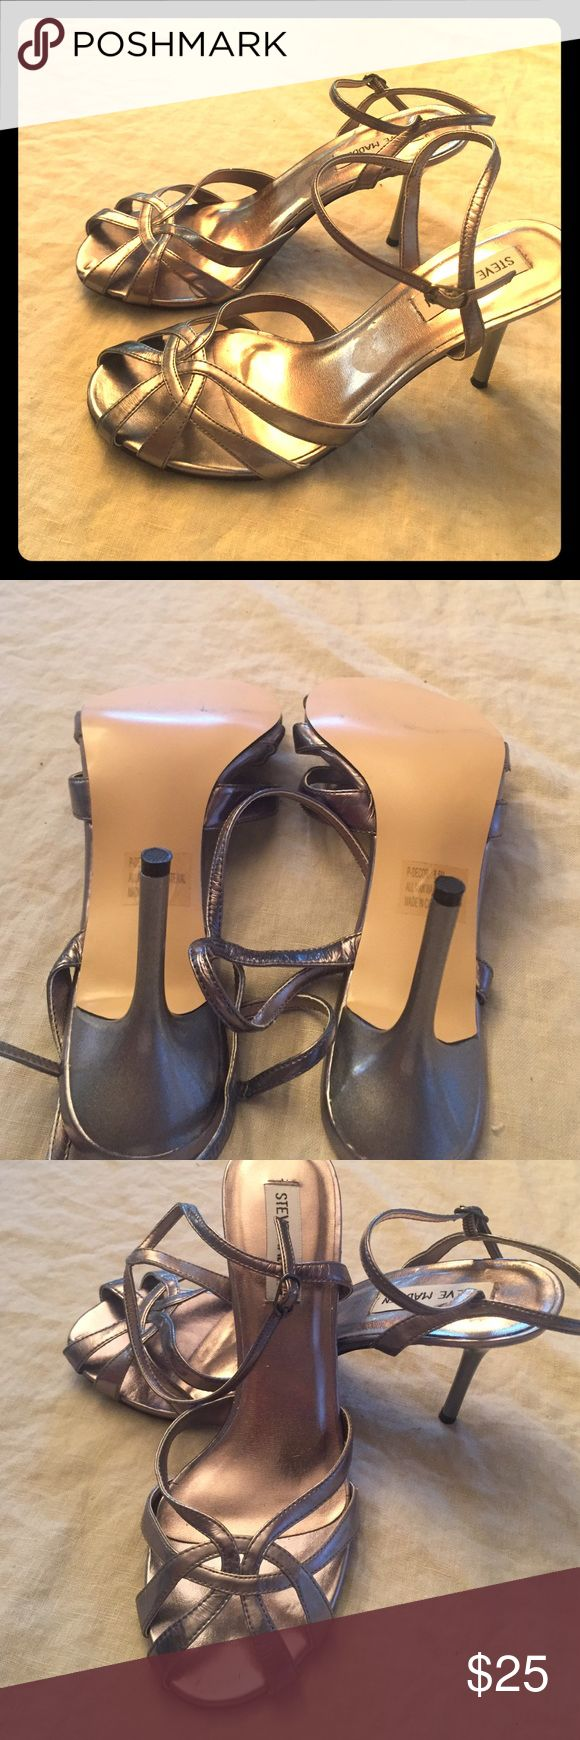 "Steve Madden pewter heels Beautiful retro looking caged toe, 3 1/2"" heel. Worn once! Steve Madden Shoes Heels"